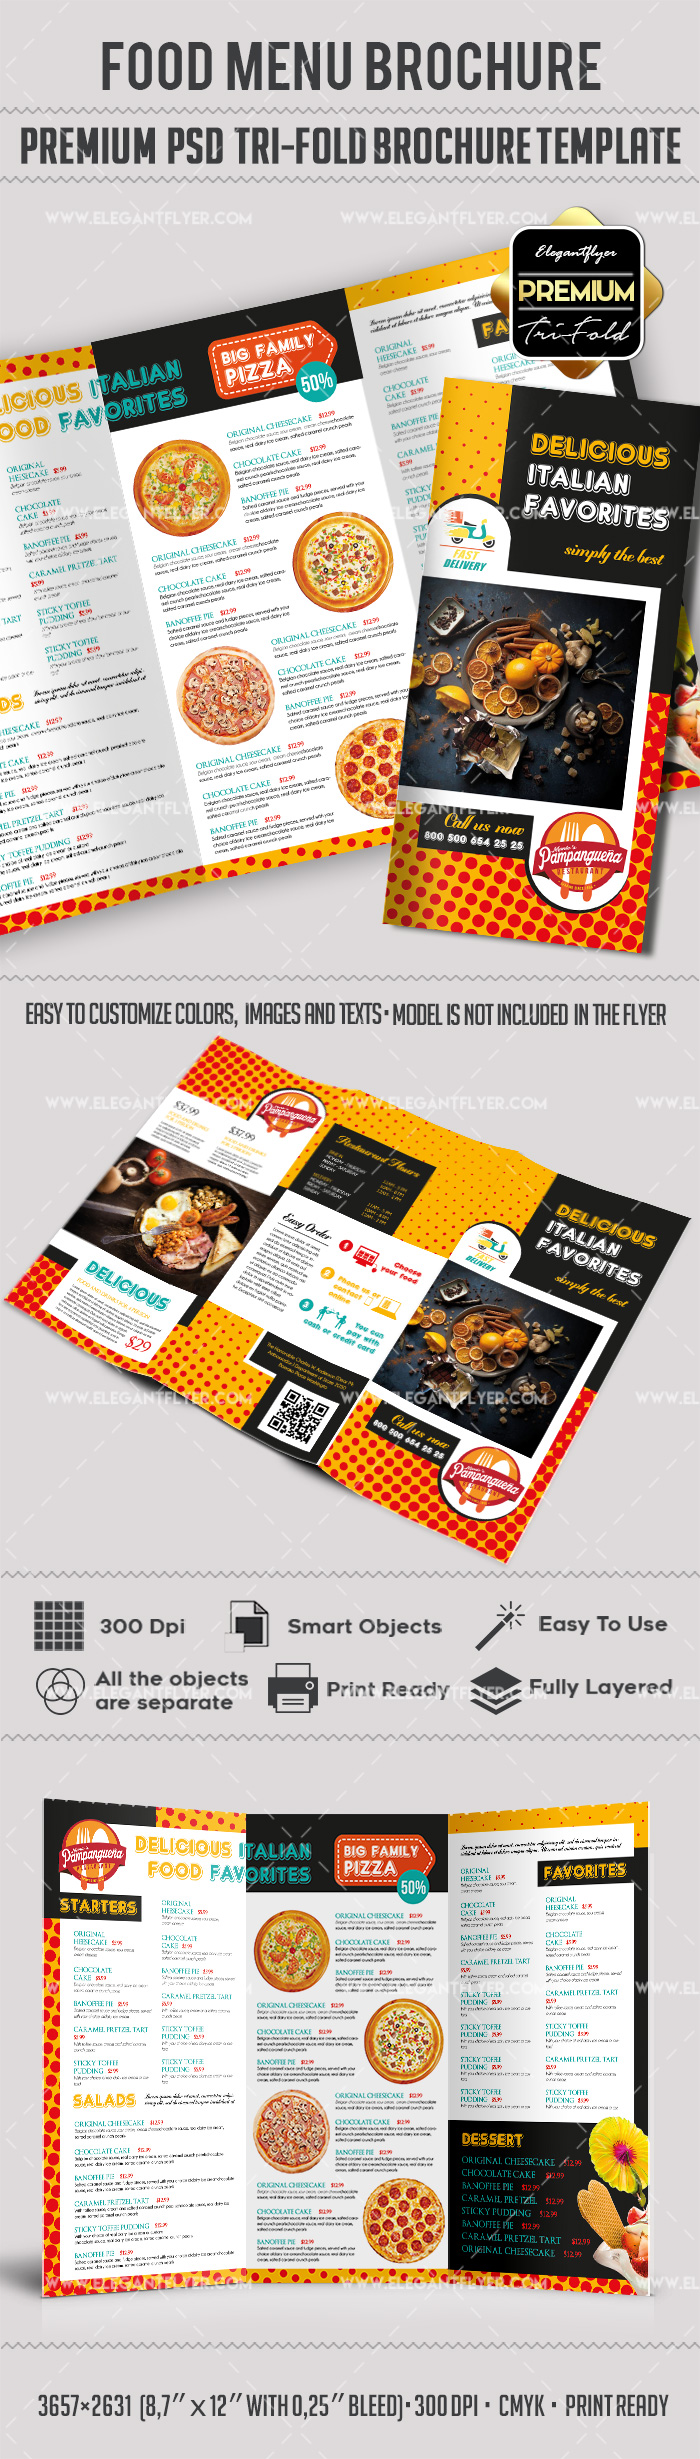 Food menu templates for tri fold brochure by elegantflyer for Free food brochure templates